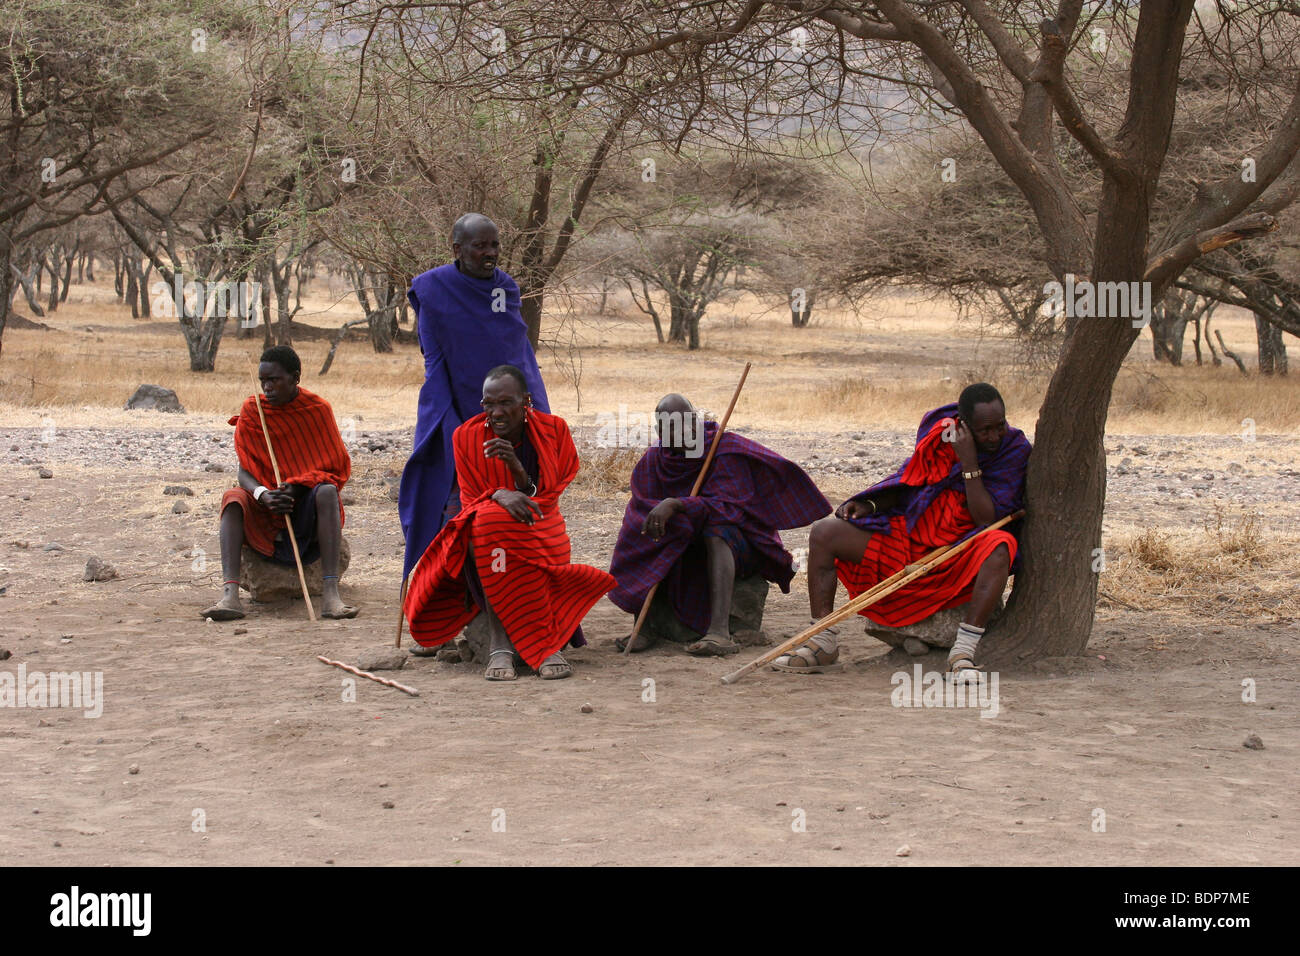 Africa, Tanzania, Maasai an ethnic group of semi-nomadic people. Men at rest in the shade of an acacia tree - Stock Image